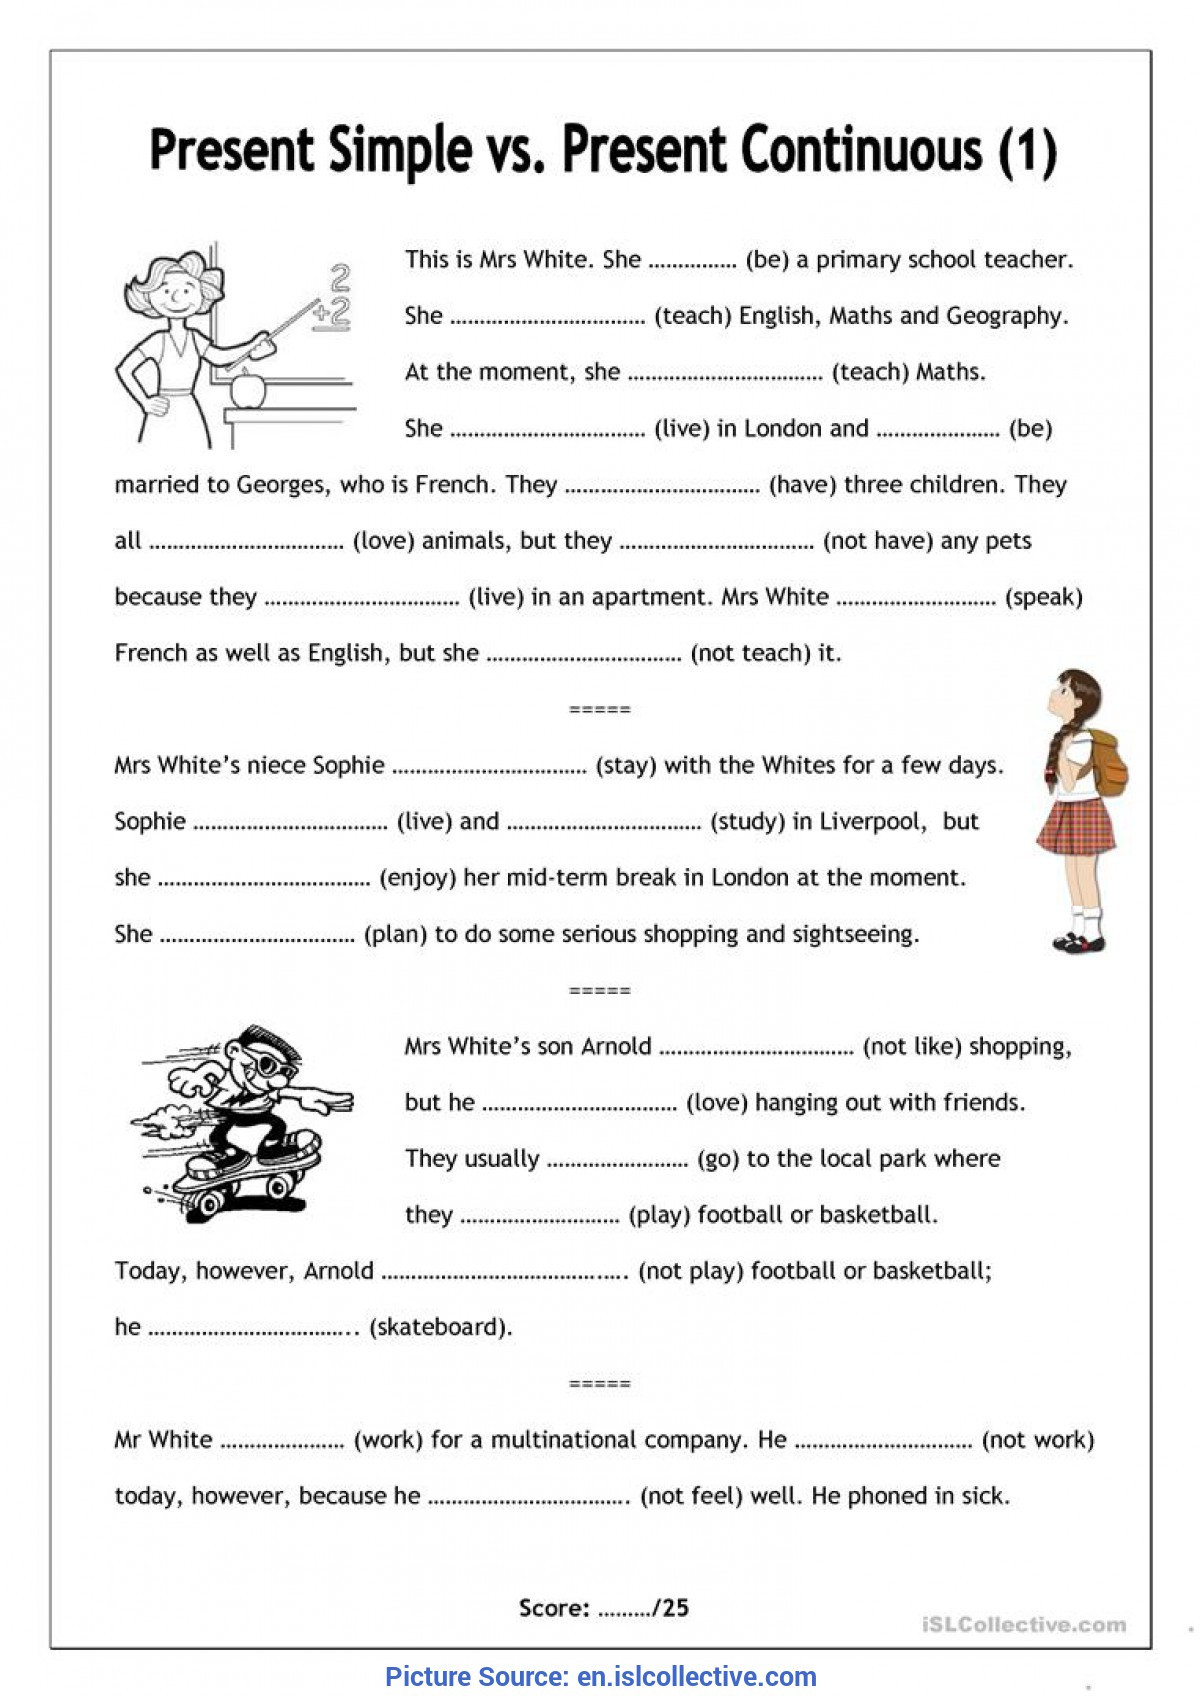 Automotive Worksheets for Highschool Students Home Tution Home Bud Planning Worksheets Crayola Cars